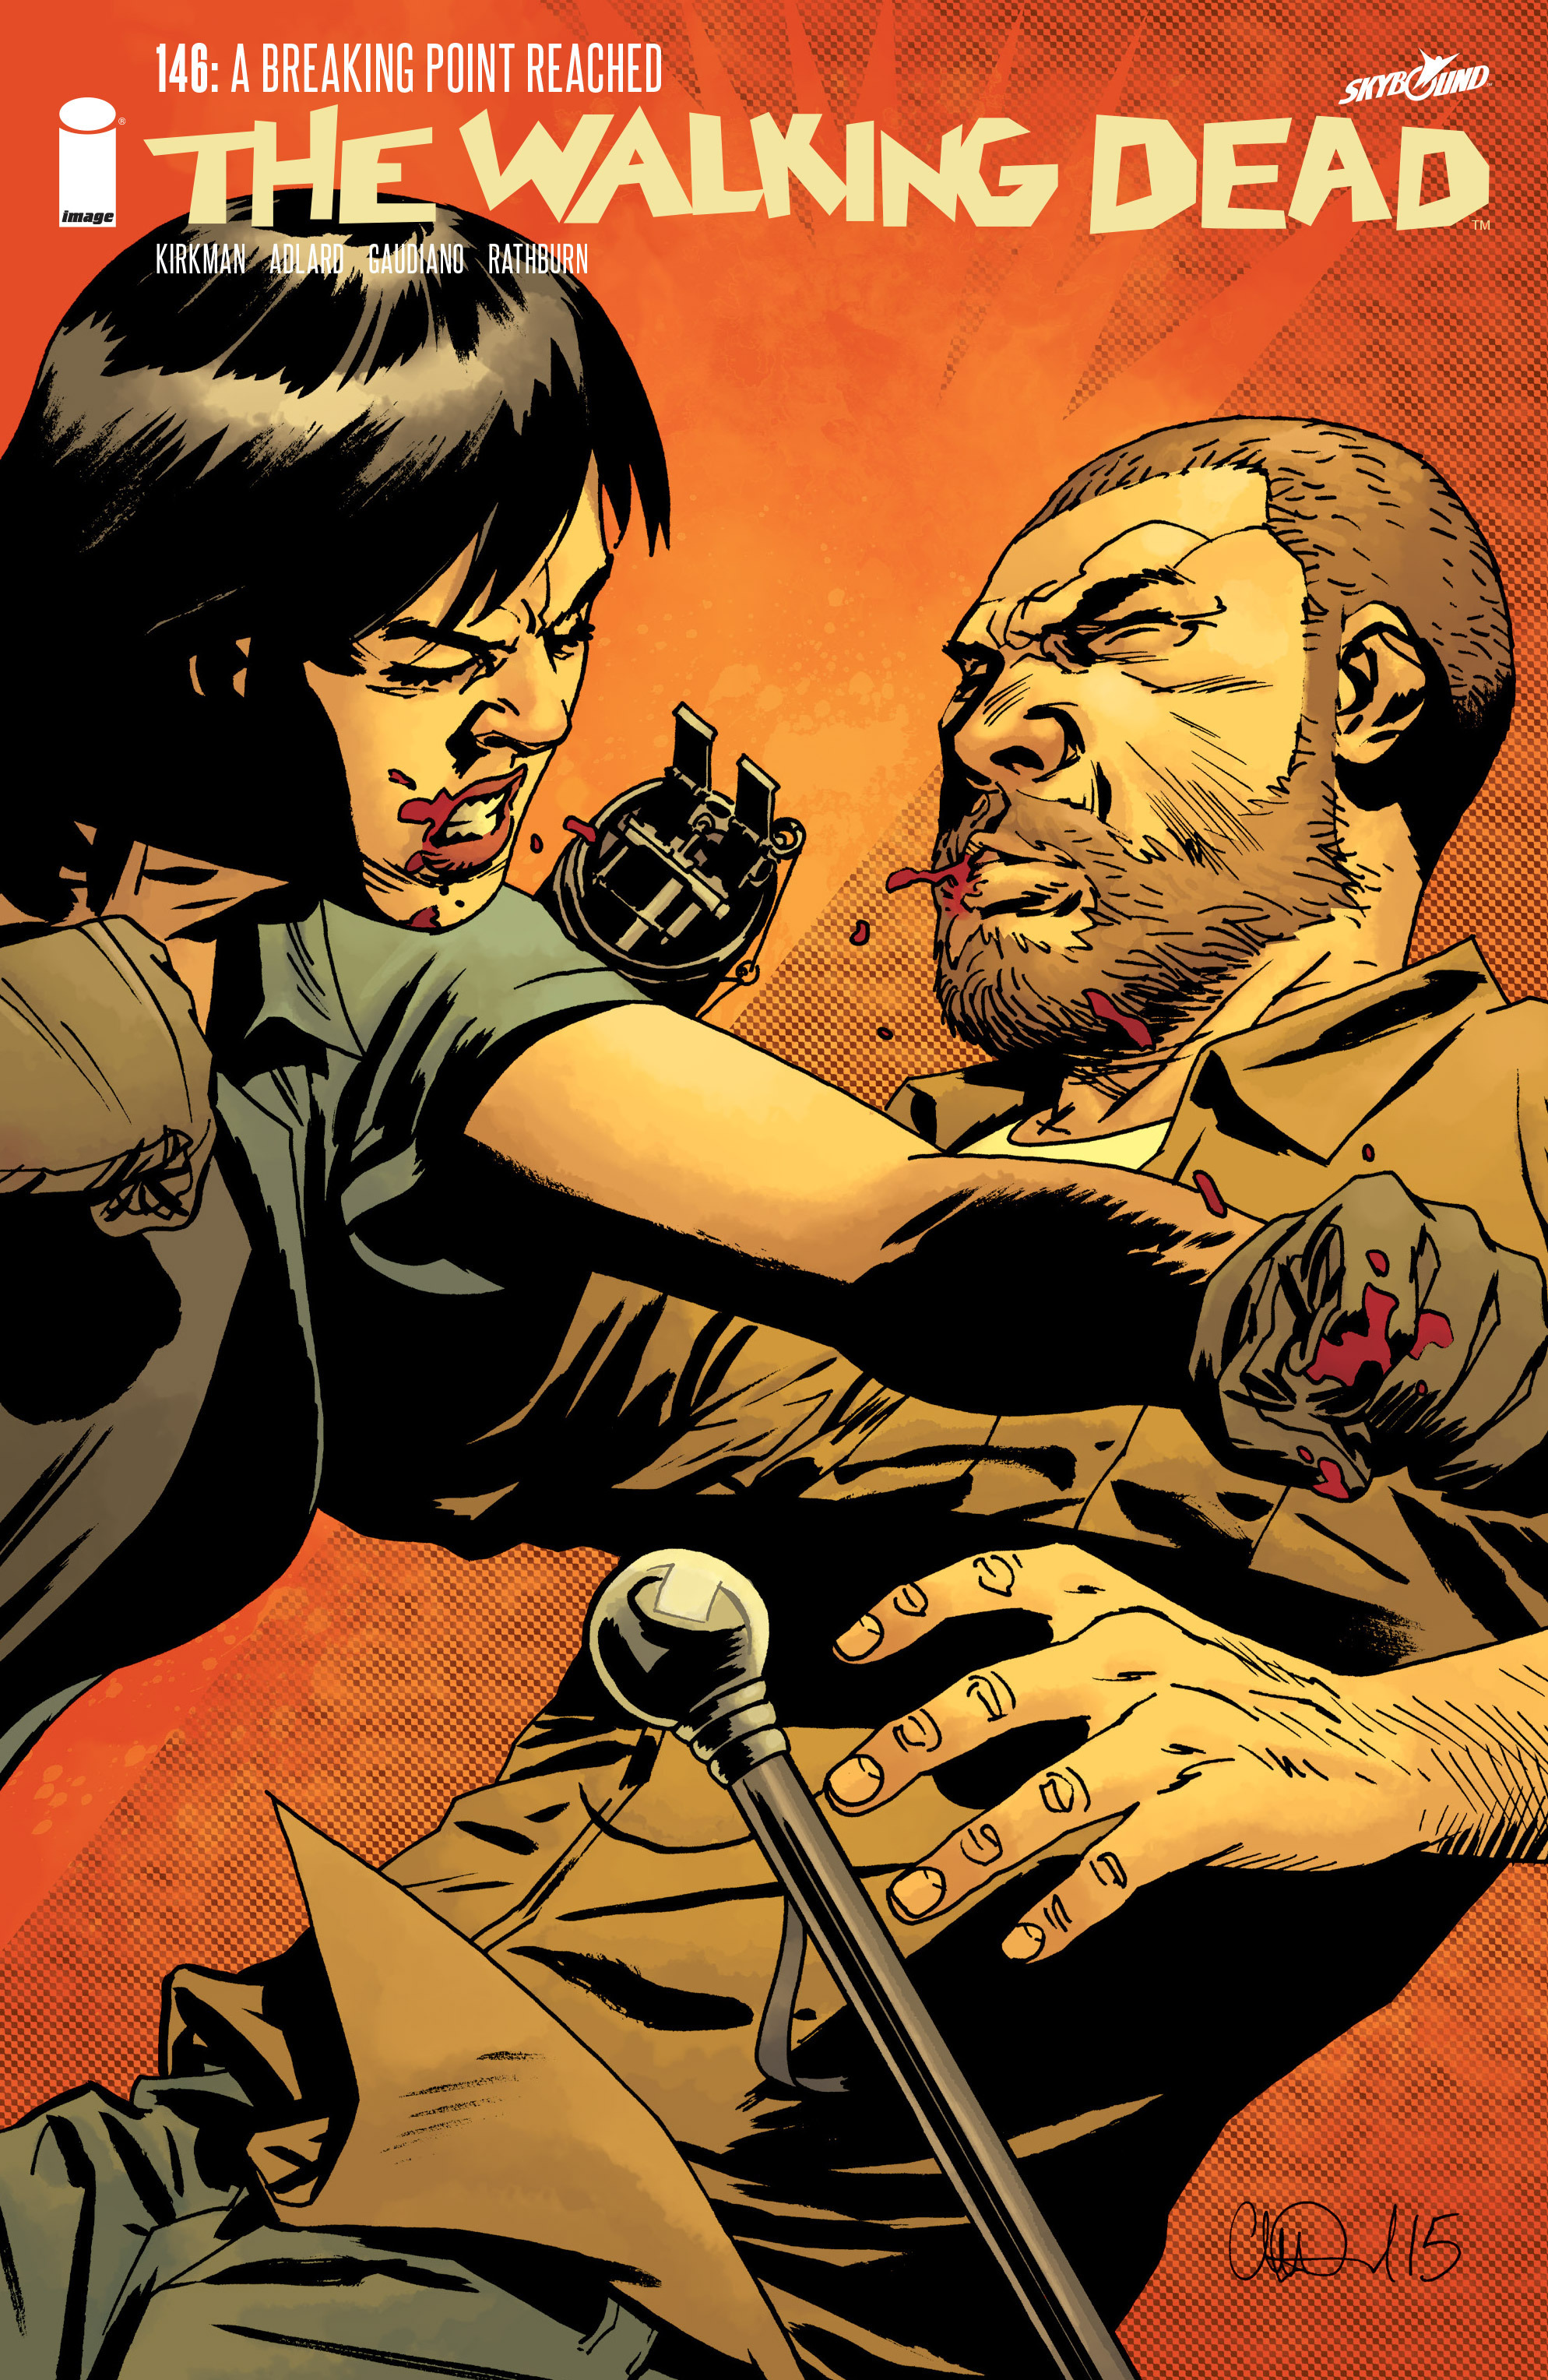 The Walking Dead 146 Page 1